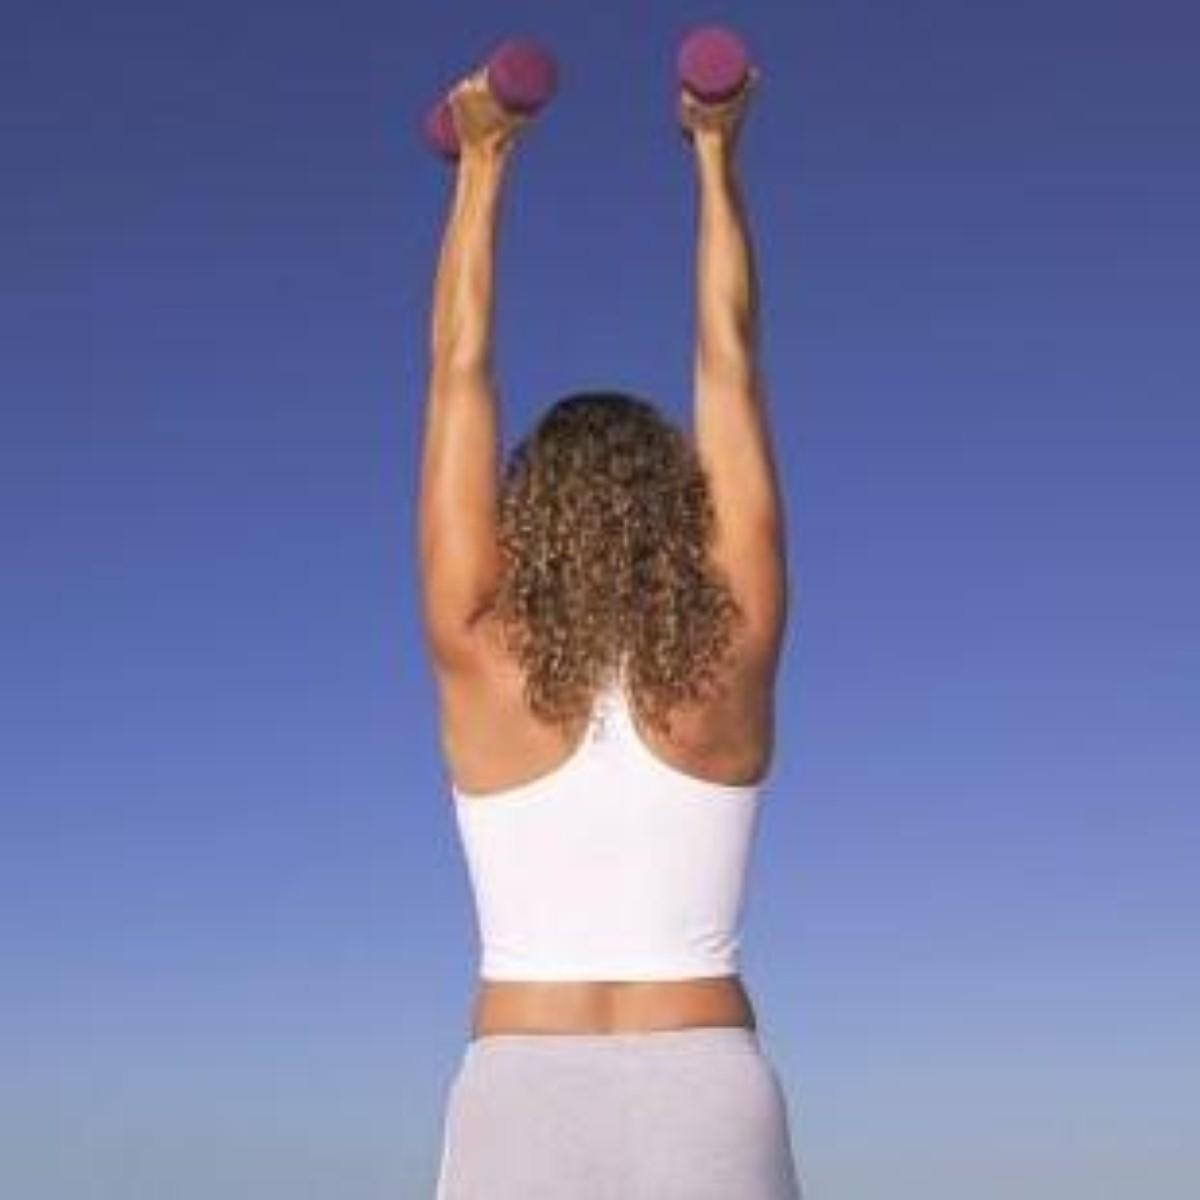 Exercise 'could reduce cancer risks'